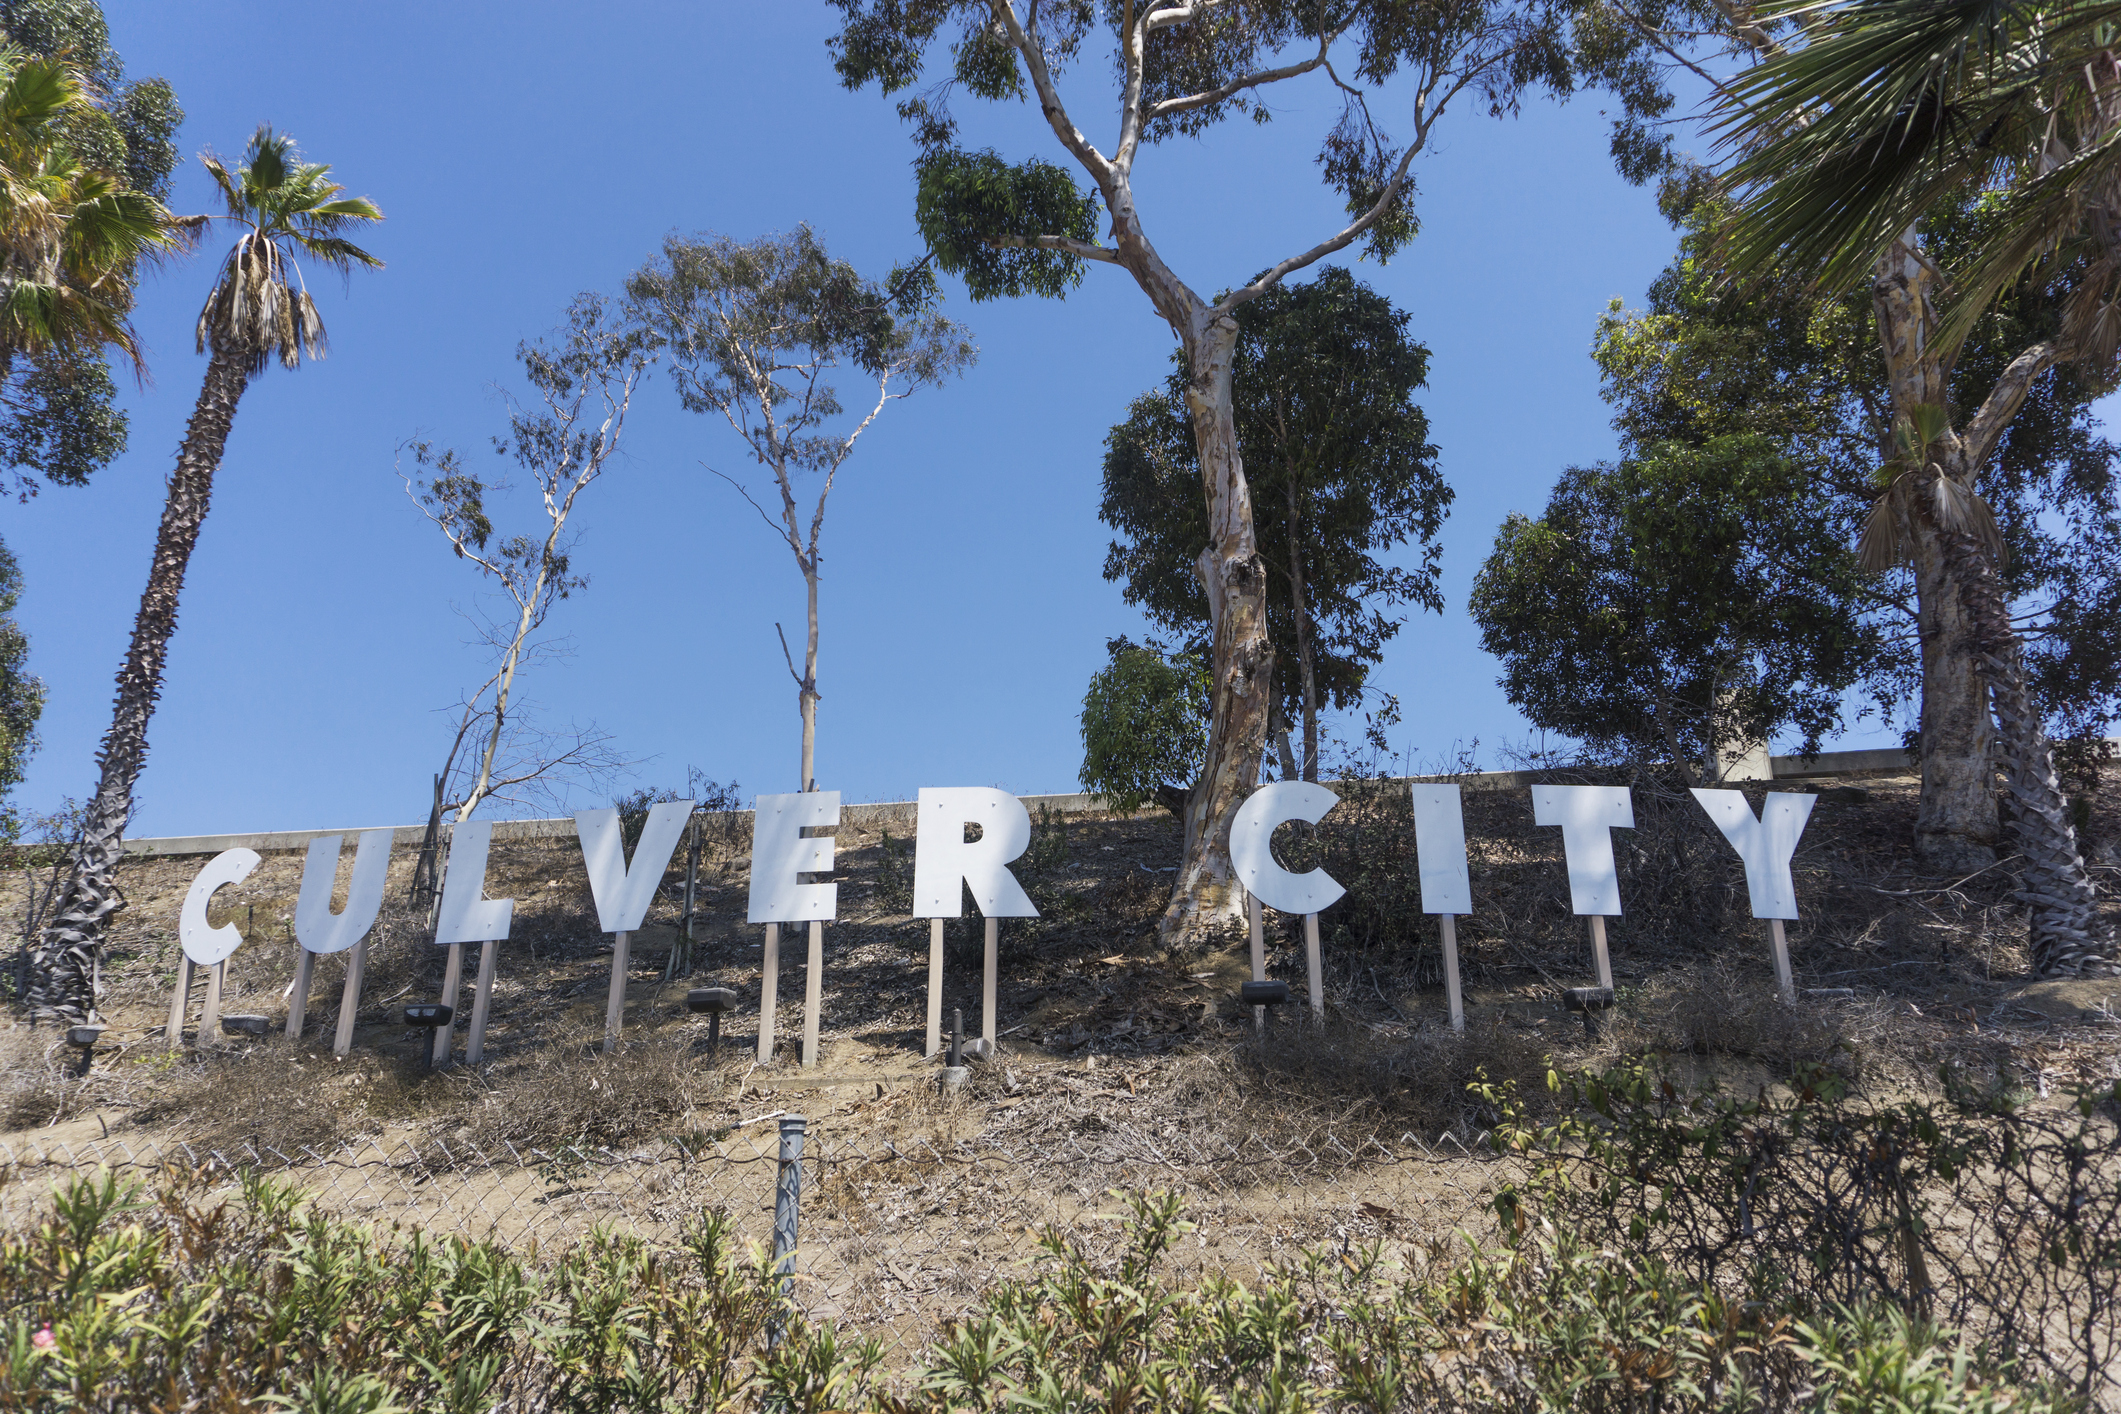 the culver city city council meeting essay Practicing leadership: an unusual summer vacation in  city council meeting  comes to culver city practicing leadership: an unusual summer.